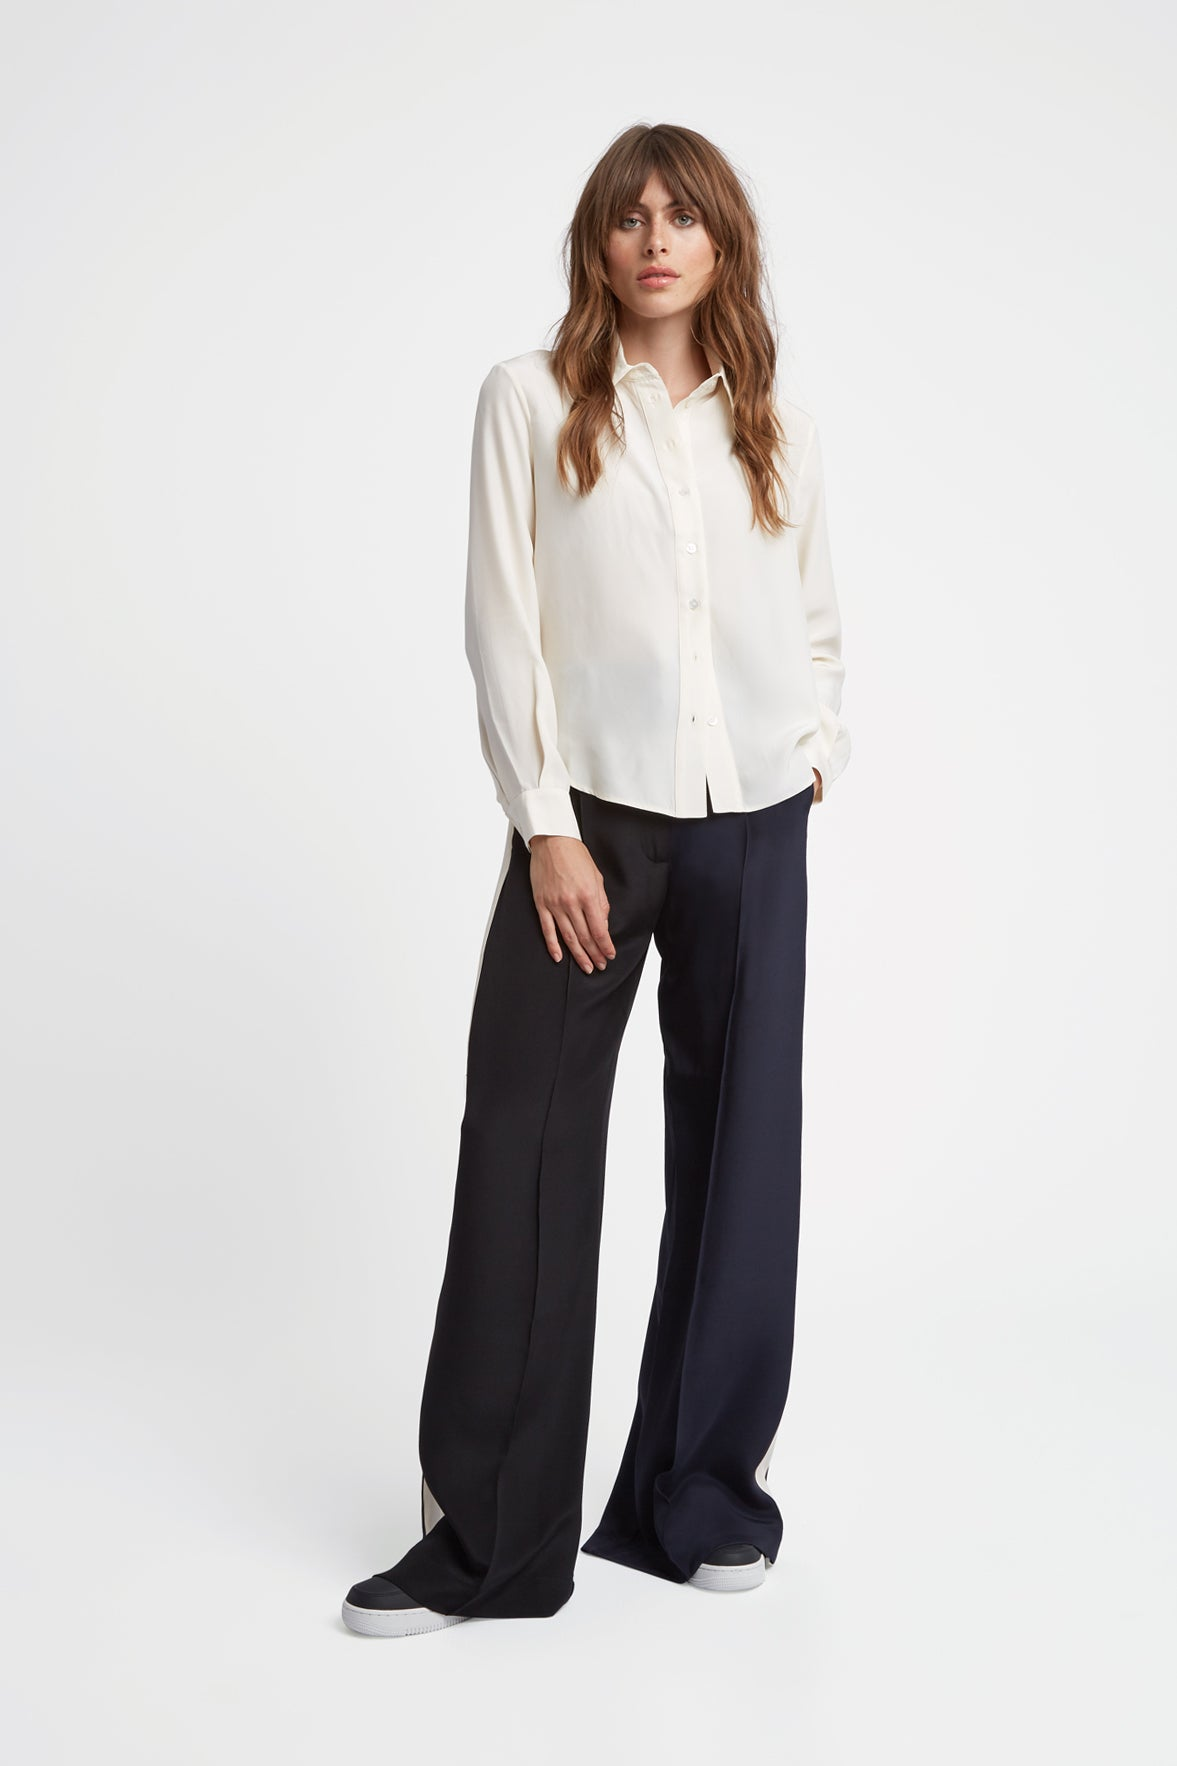 The Serena Trouser - Navy, Black & Ivory Cream Two Tone Silk - SERENA BUTE